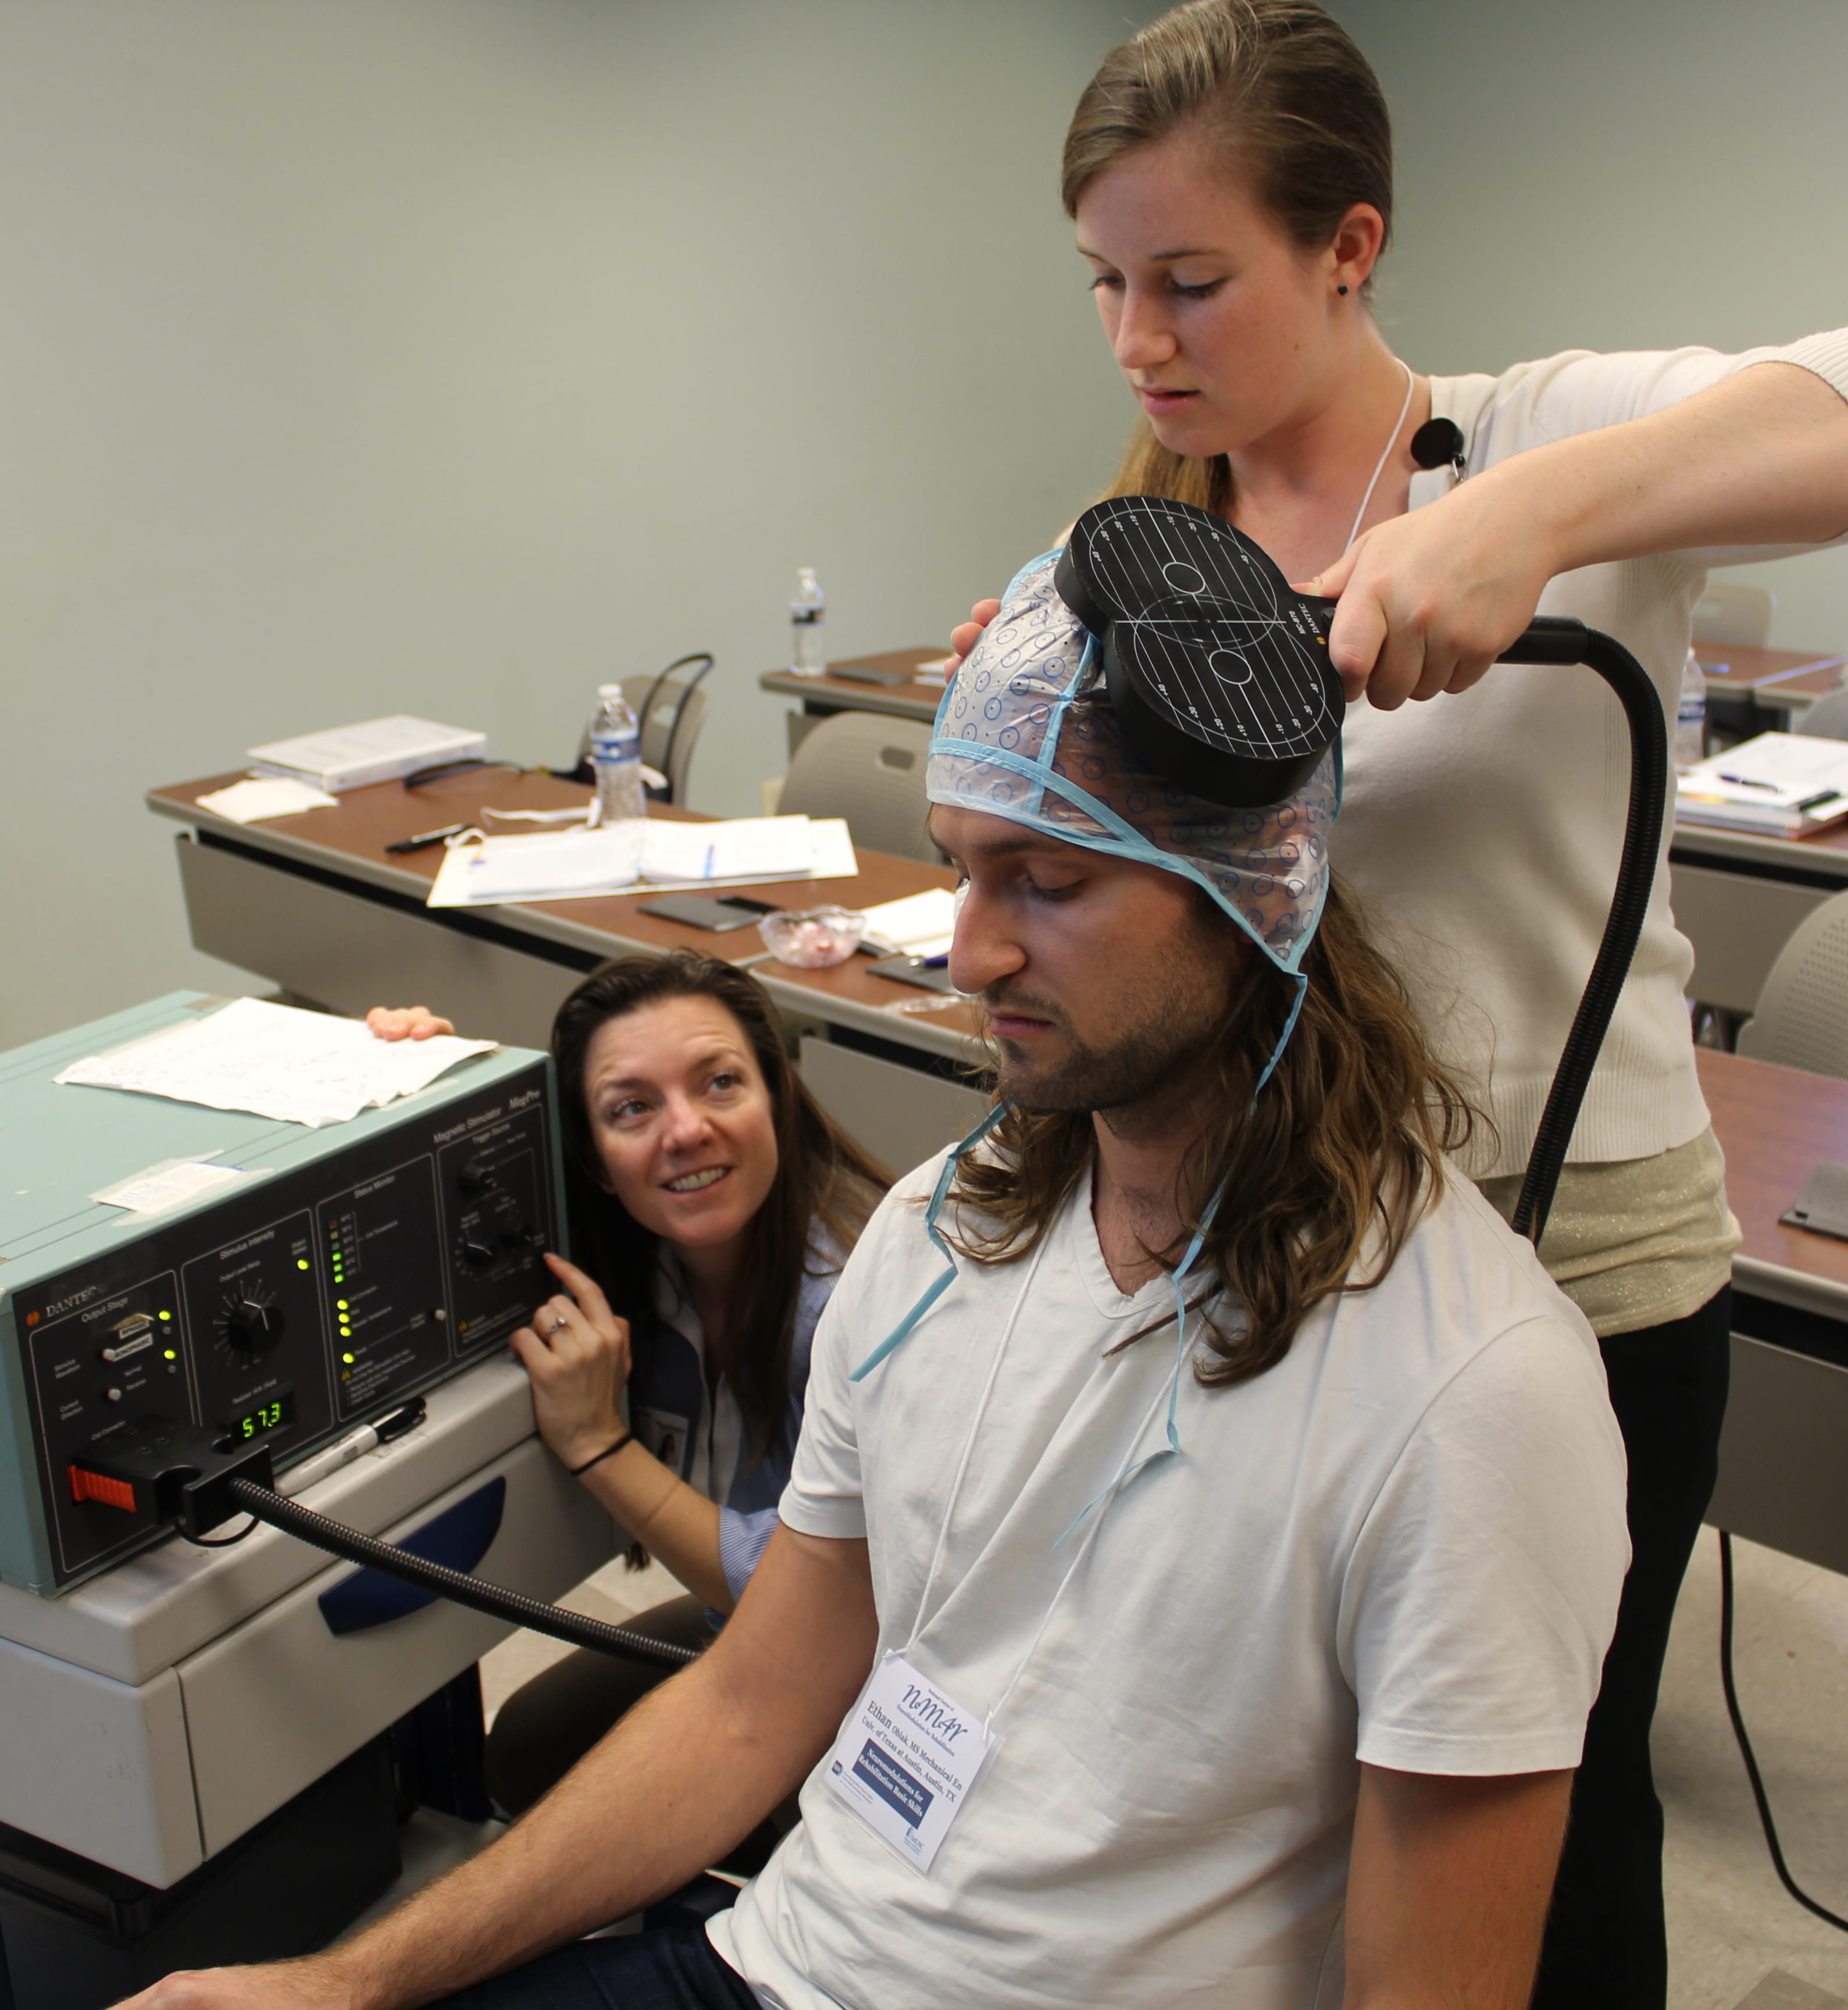 Training attendees in using transcranial magnetic stimulation during the introductory workshop.